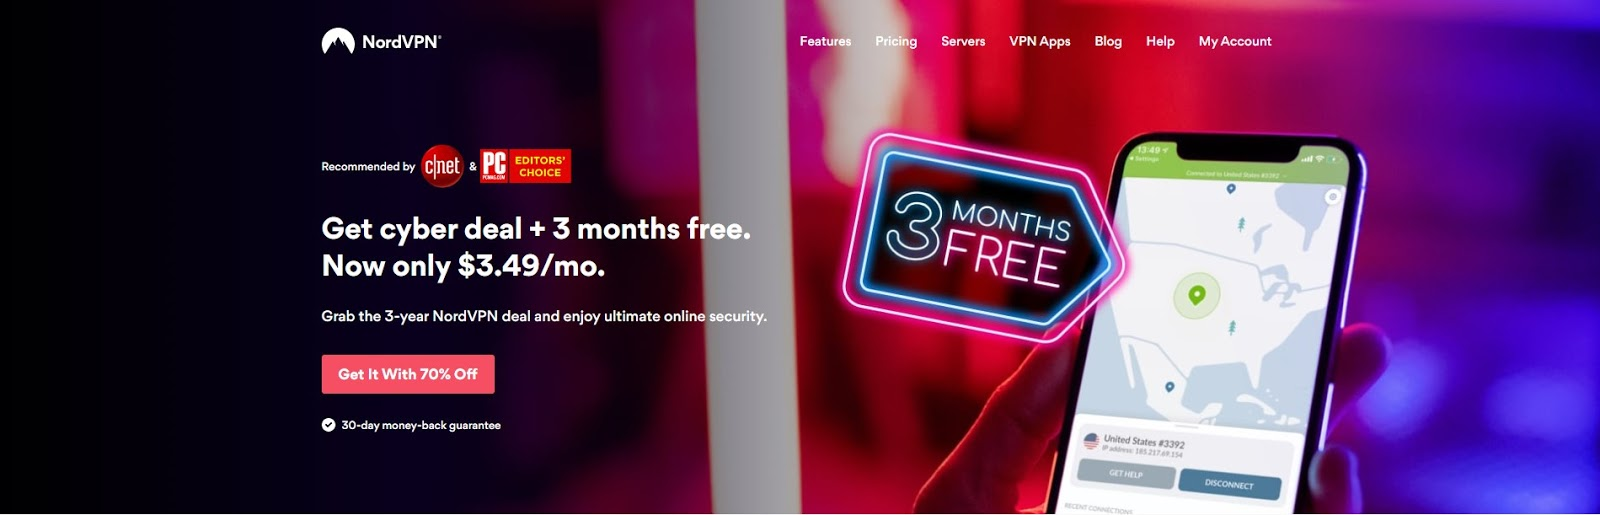 nordvpn black friday cyber monday discount